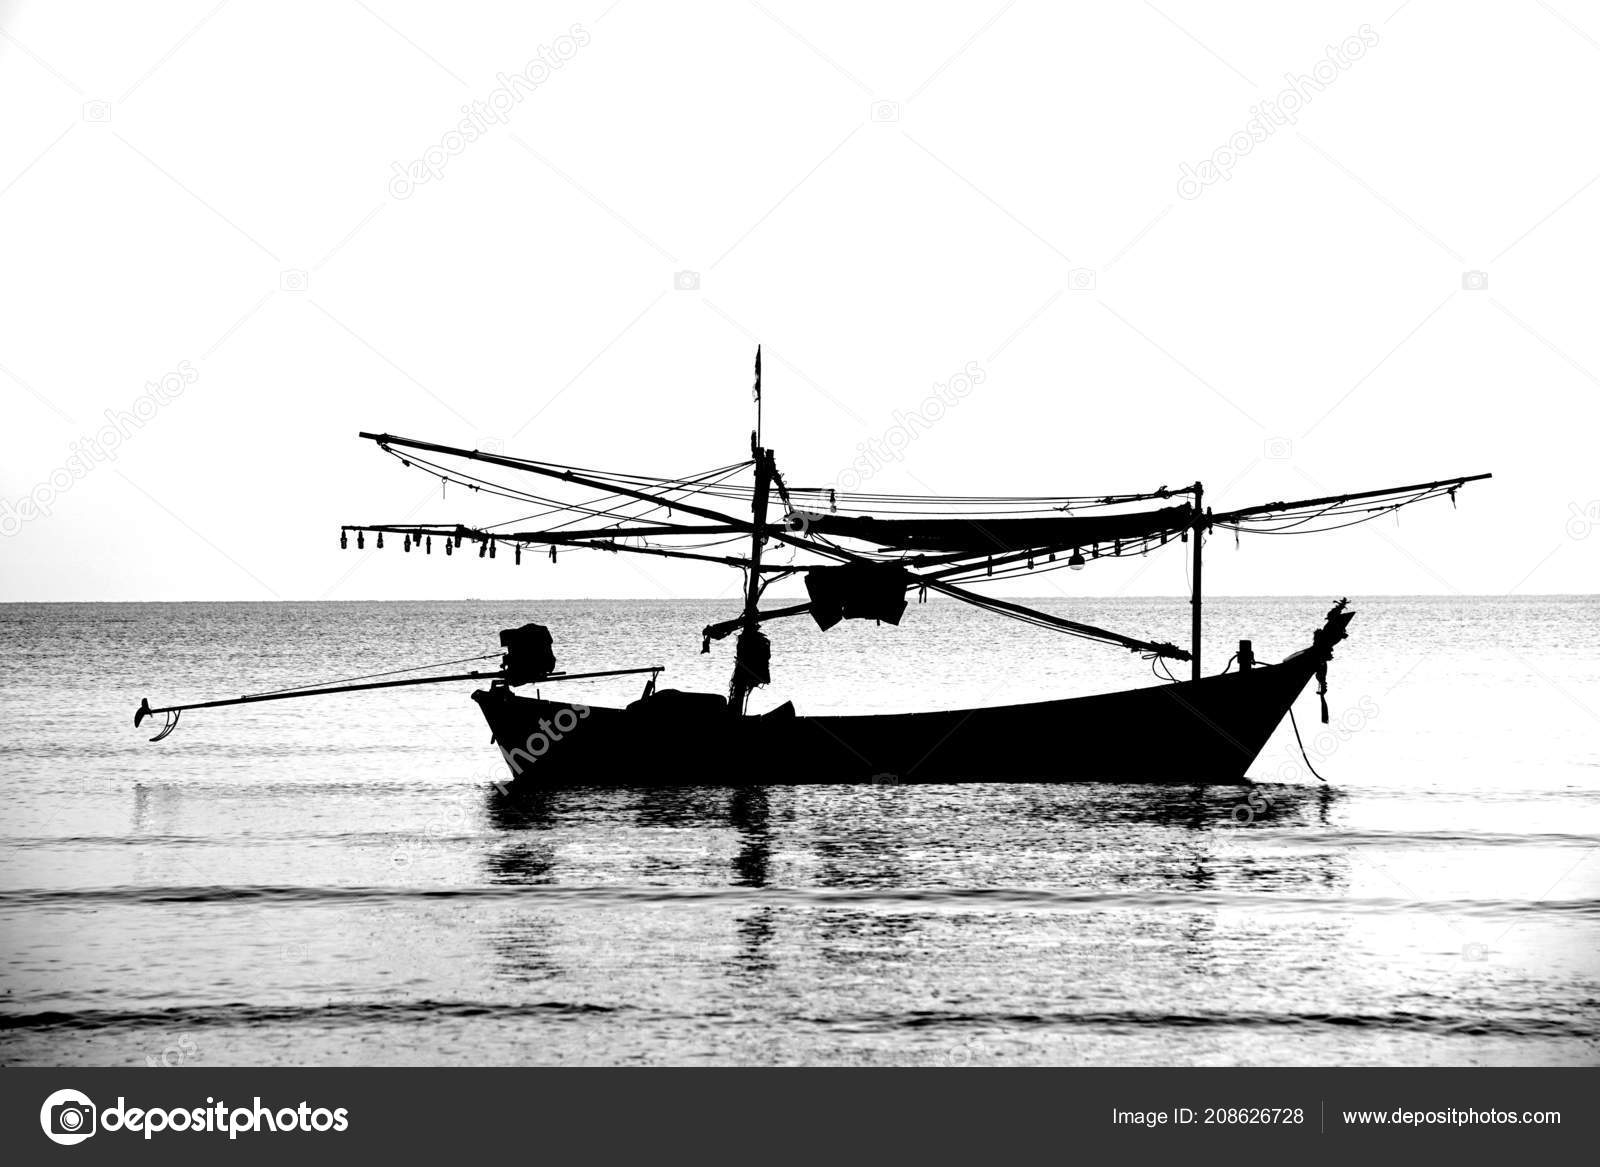 Silhouette Fishing Boat Stock Photo C Just One Pic 208626728